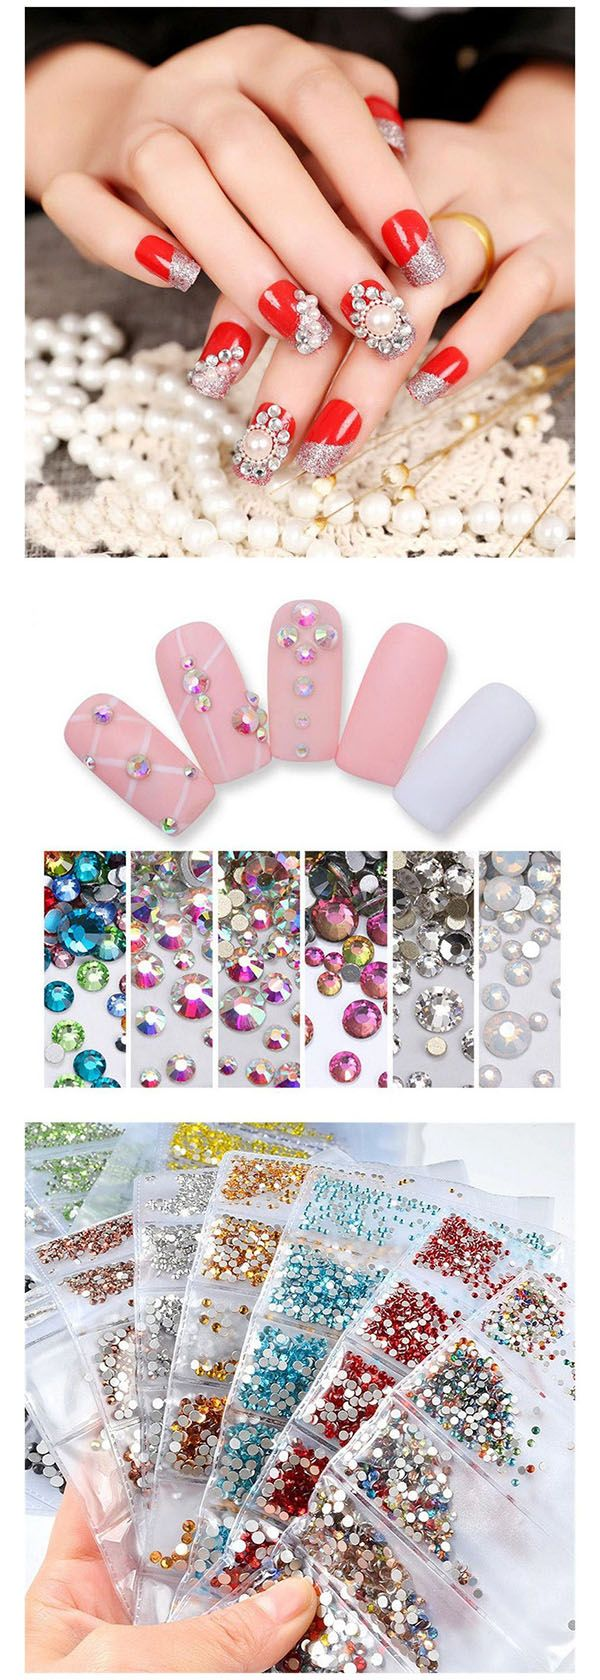 Multisize newly released d decoration come to make your nail